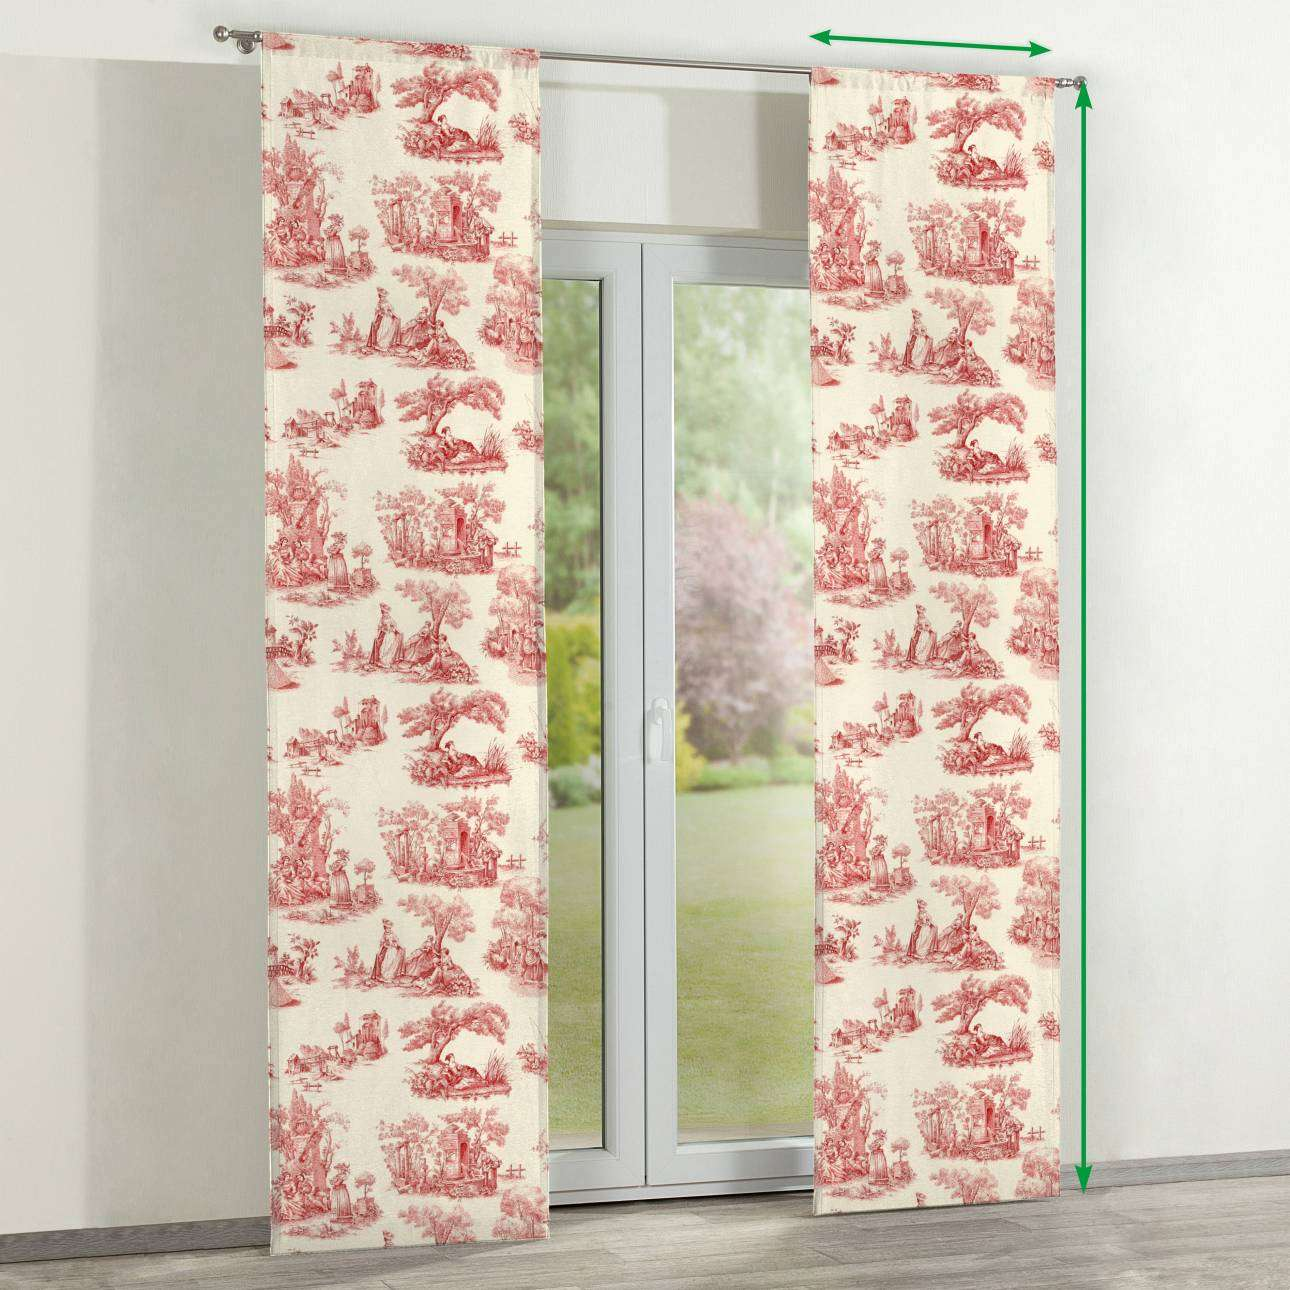 Slot panel curtains – Set of 2 in collection Avinon, fabric: 132-15